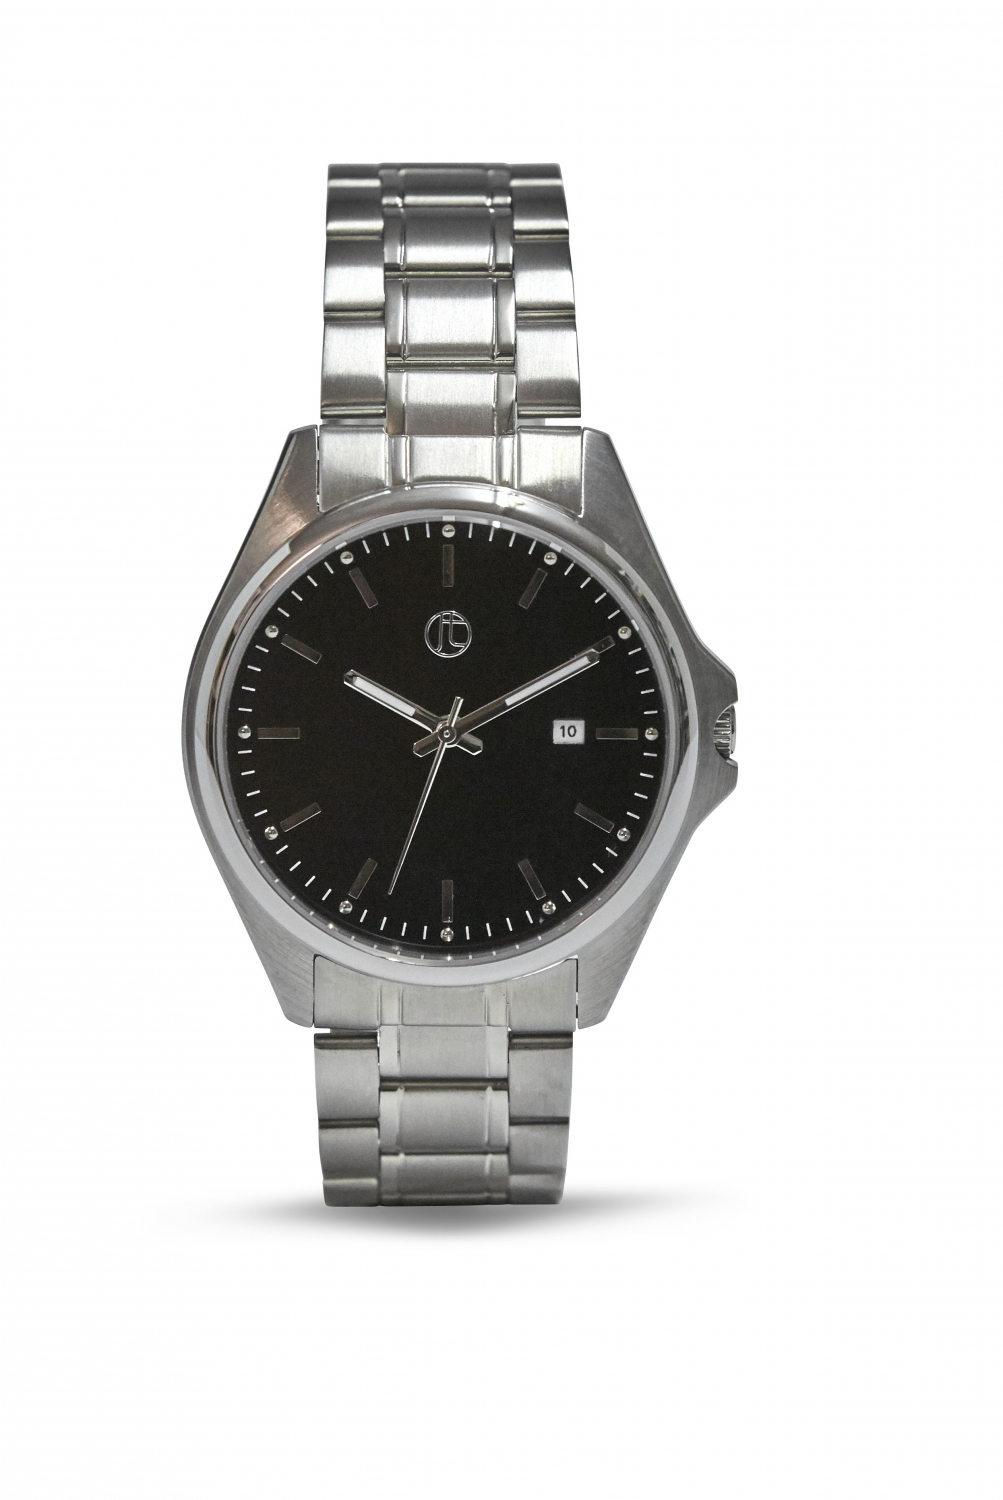 Image of Jeweltime ur - C3072-A